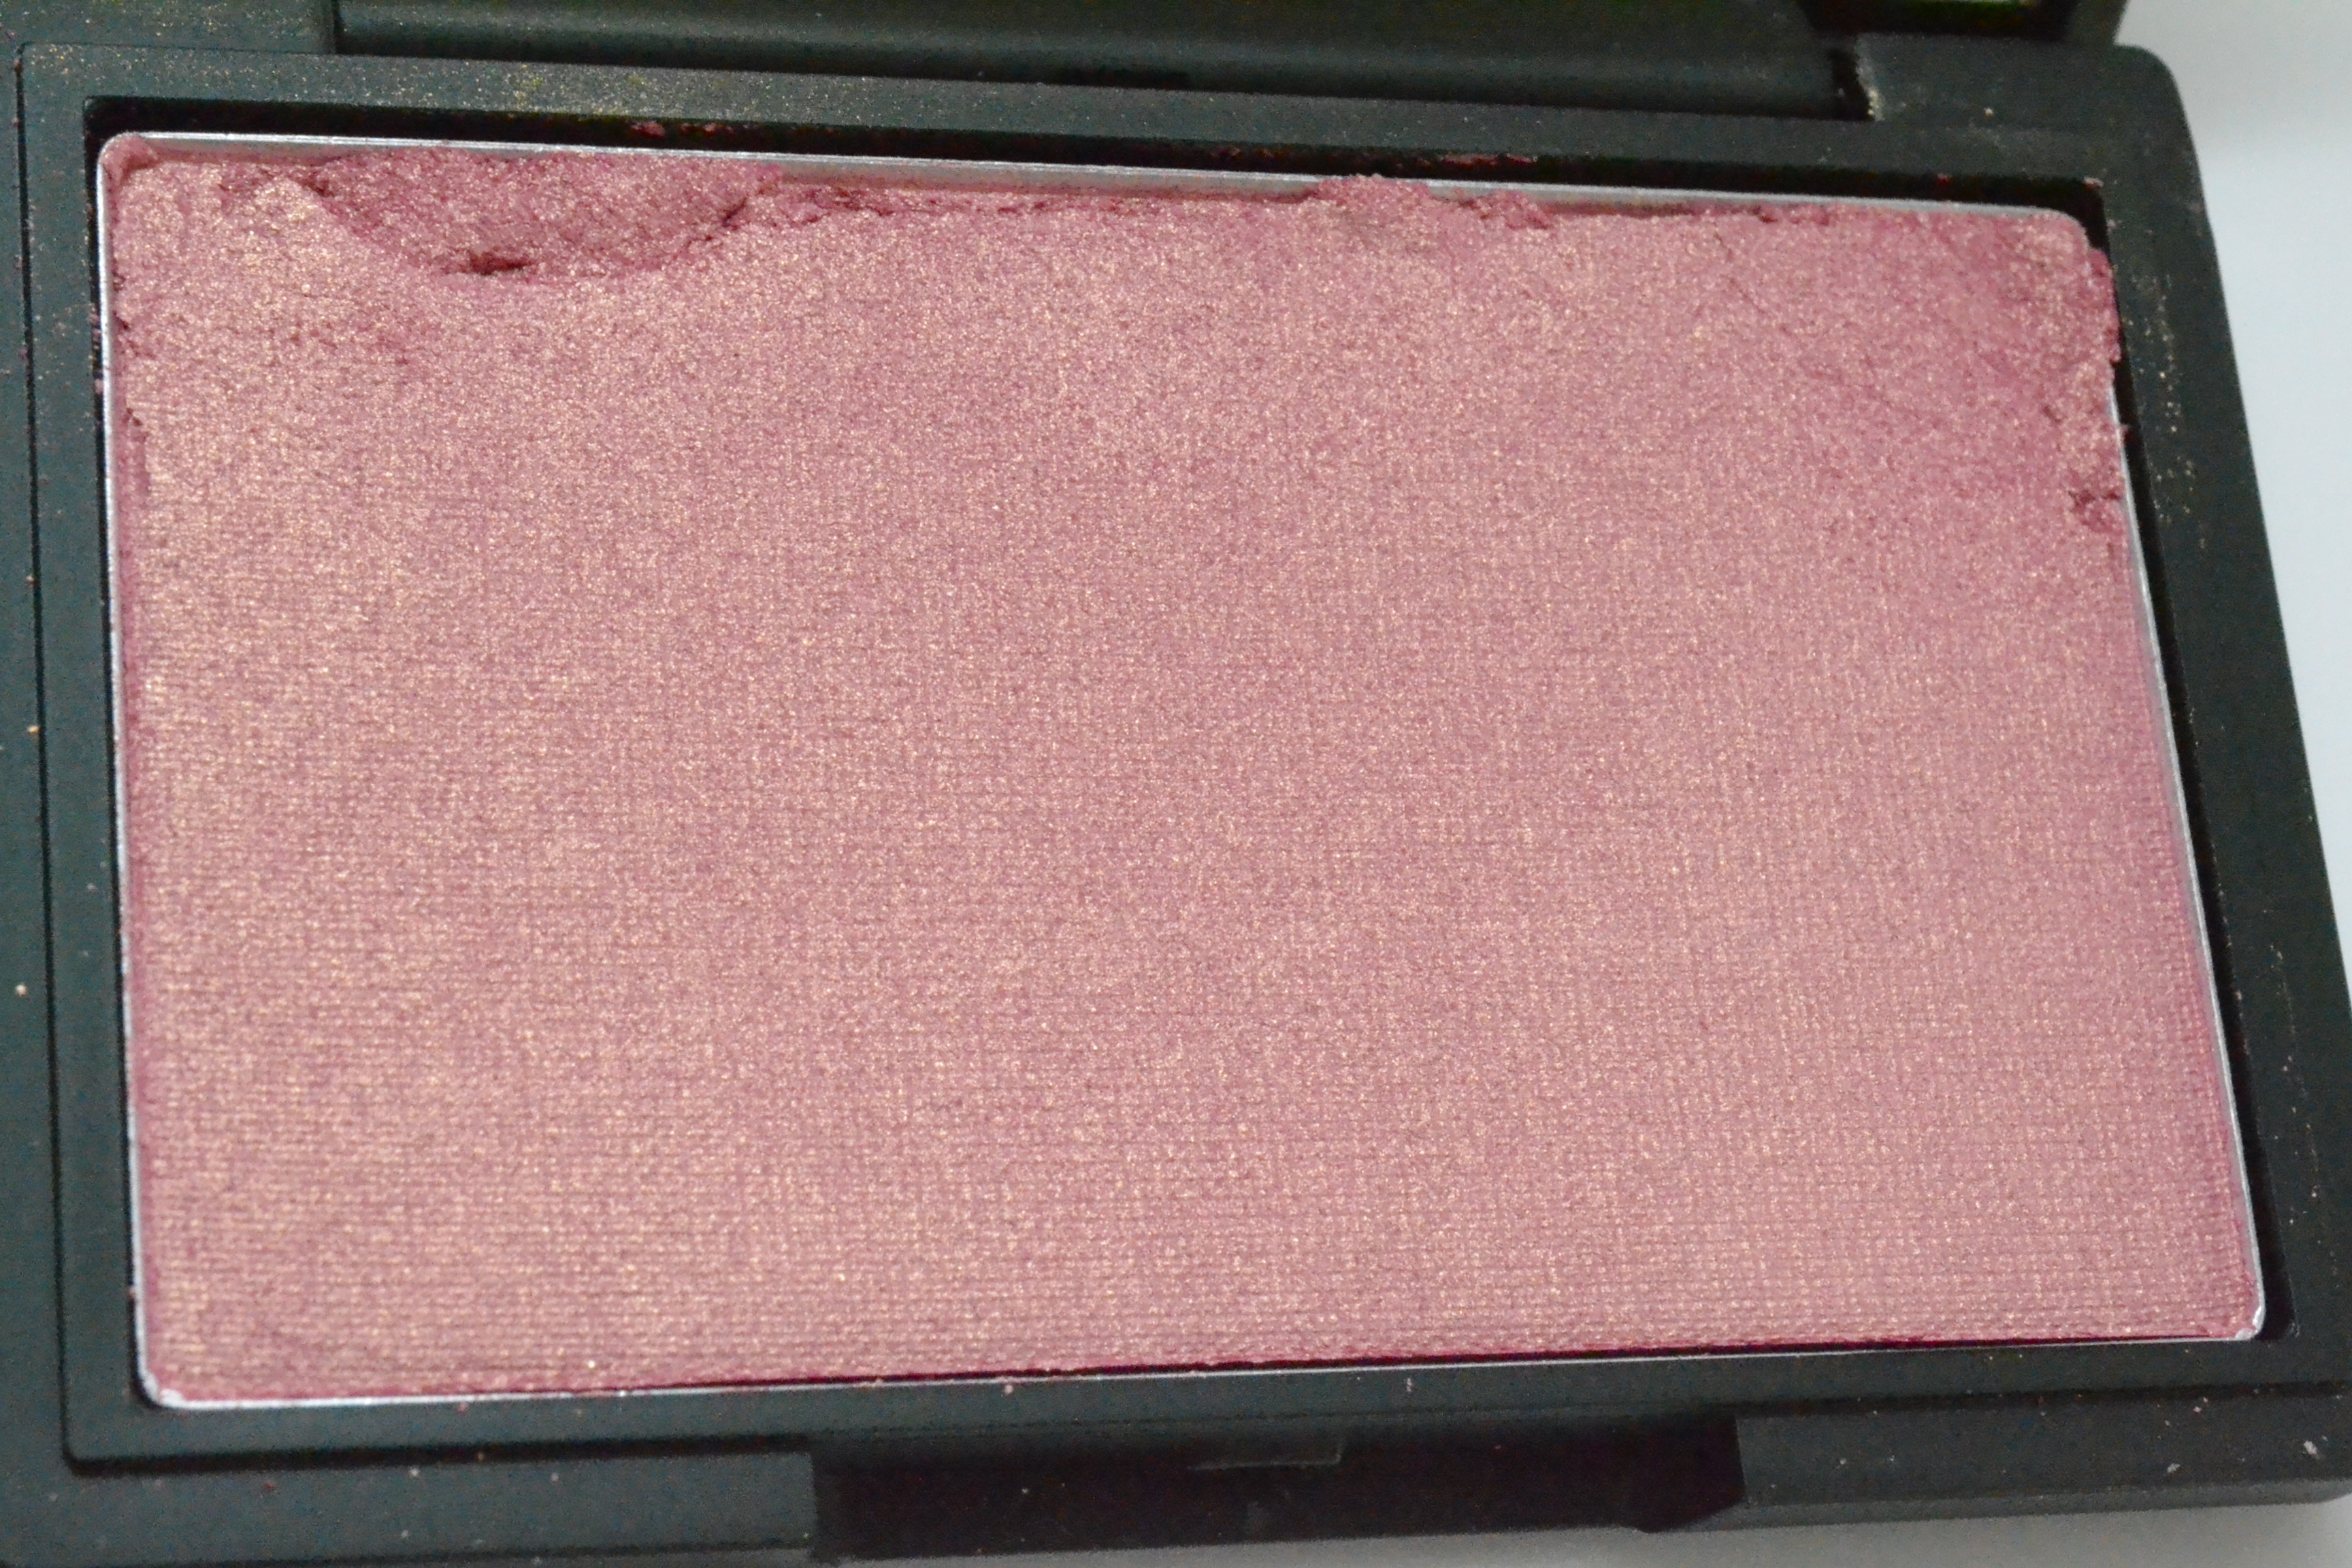 Sleek Rose Gold blush review Nars Orgasm Dupe